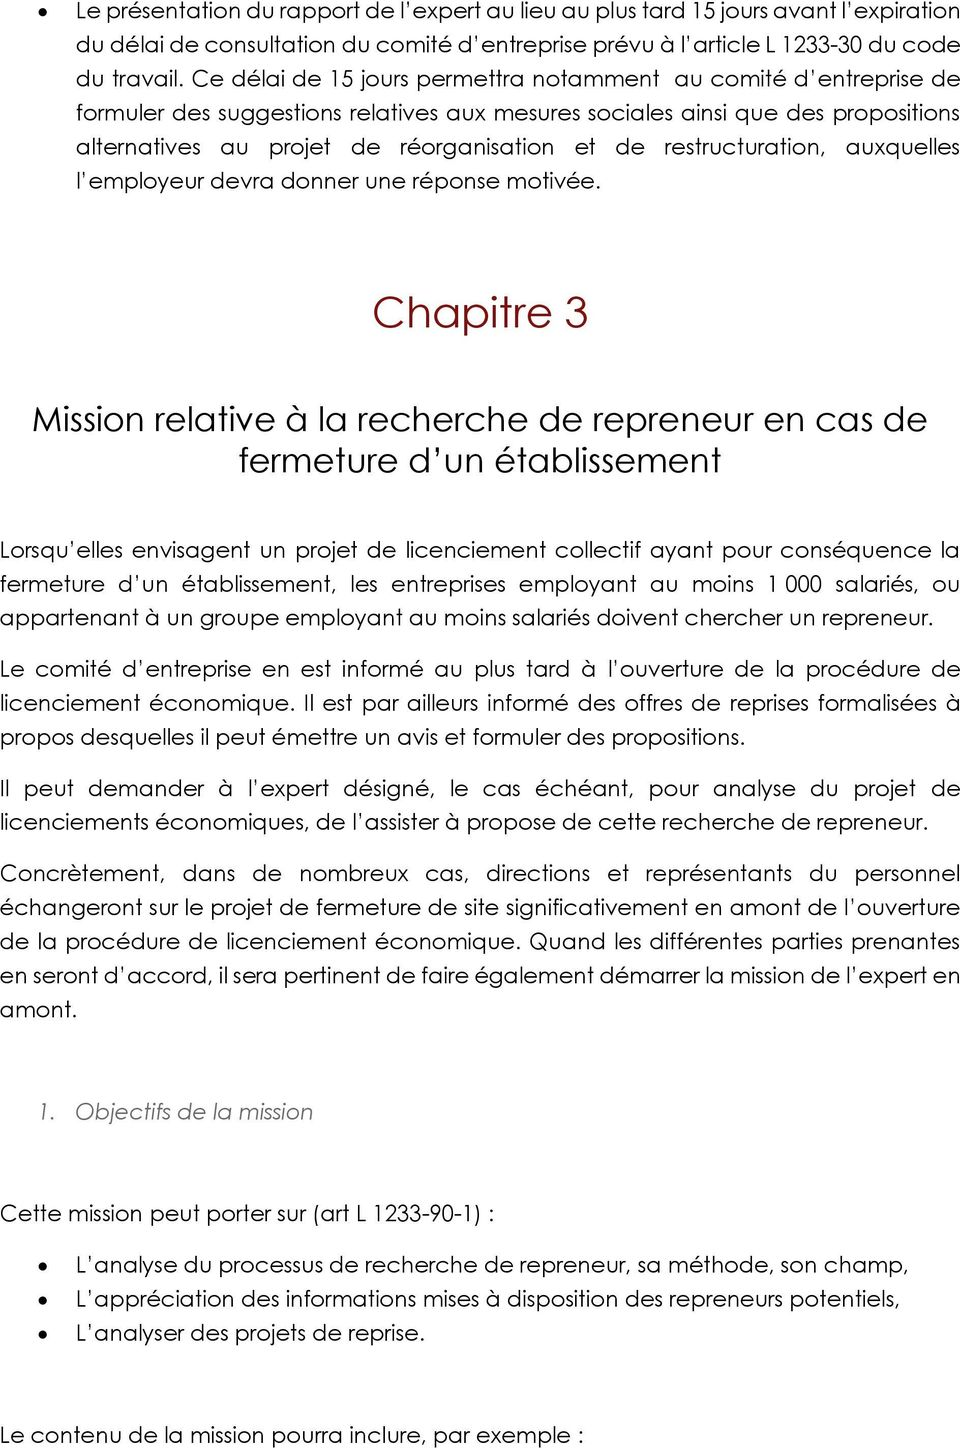 Mission Relative Au Licenciement Economique Pdf